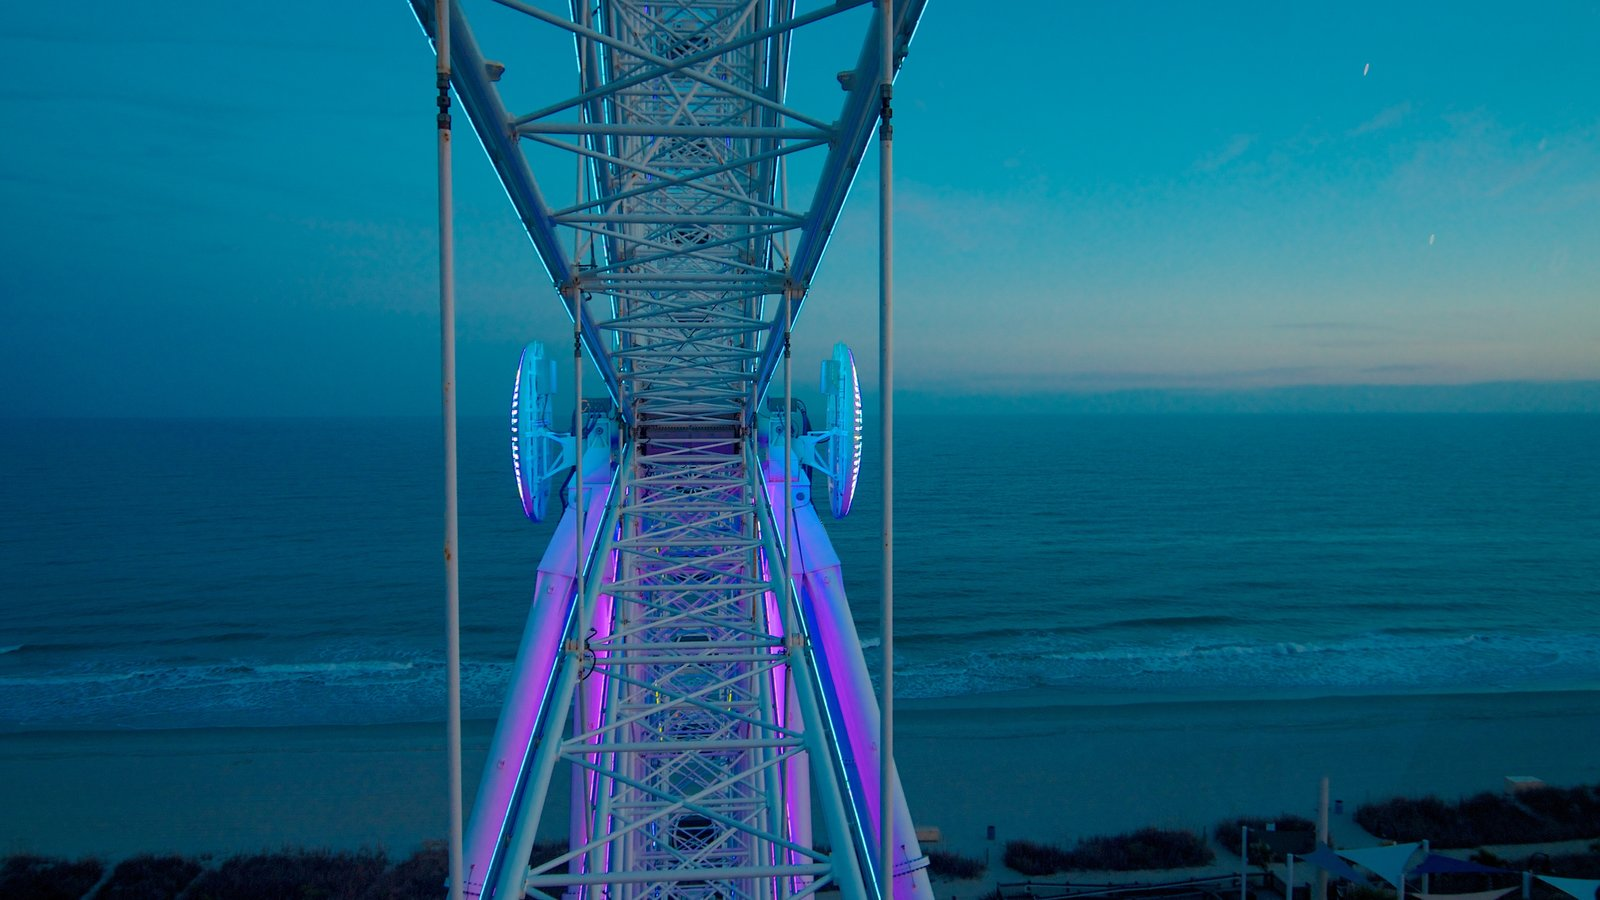 Skywheel Myrtle Beach